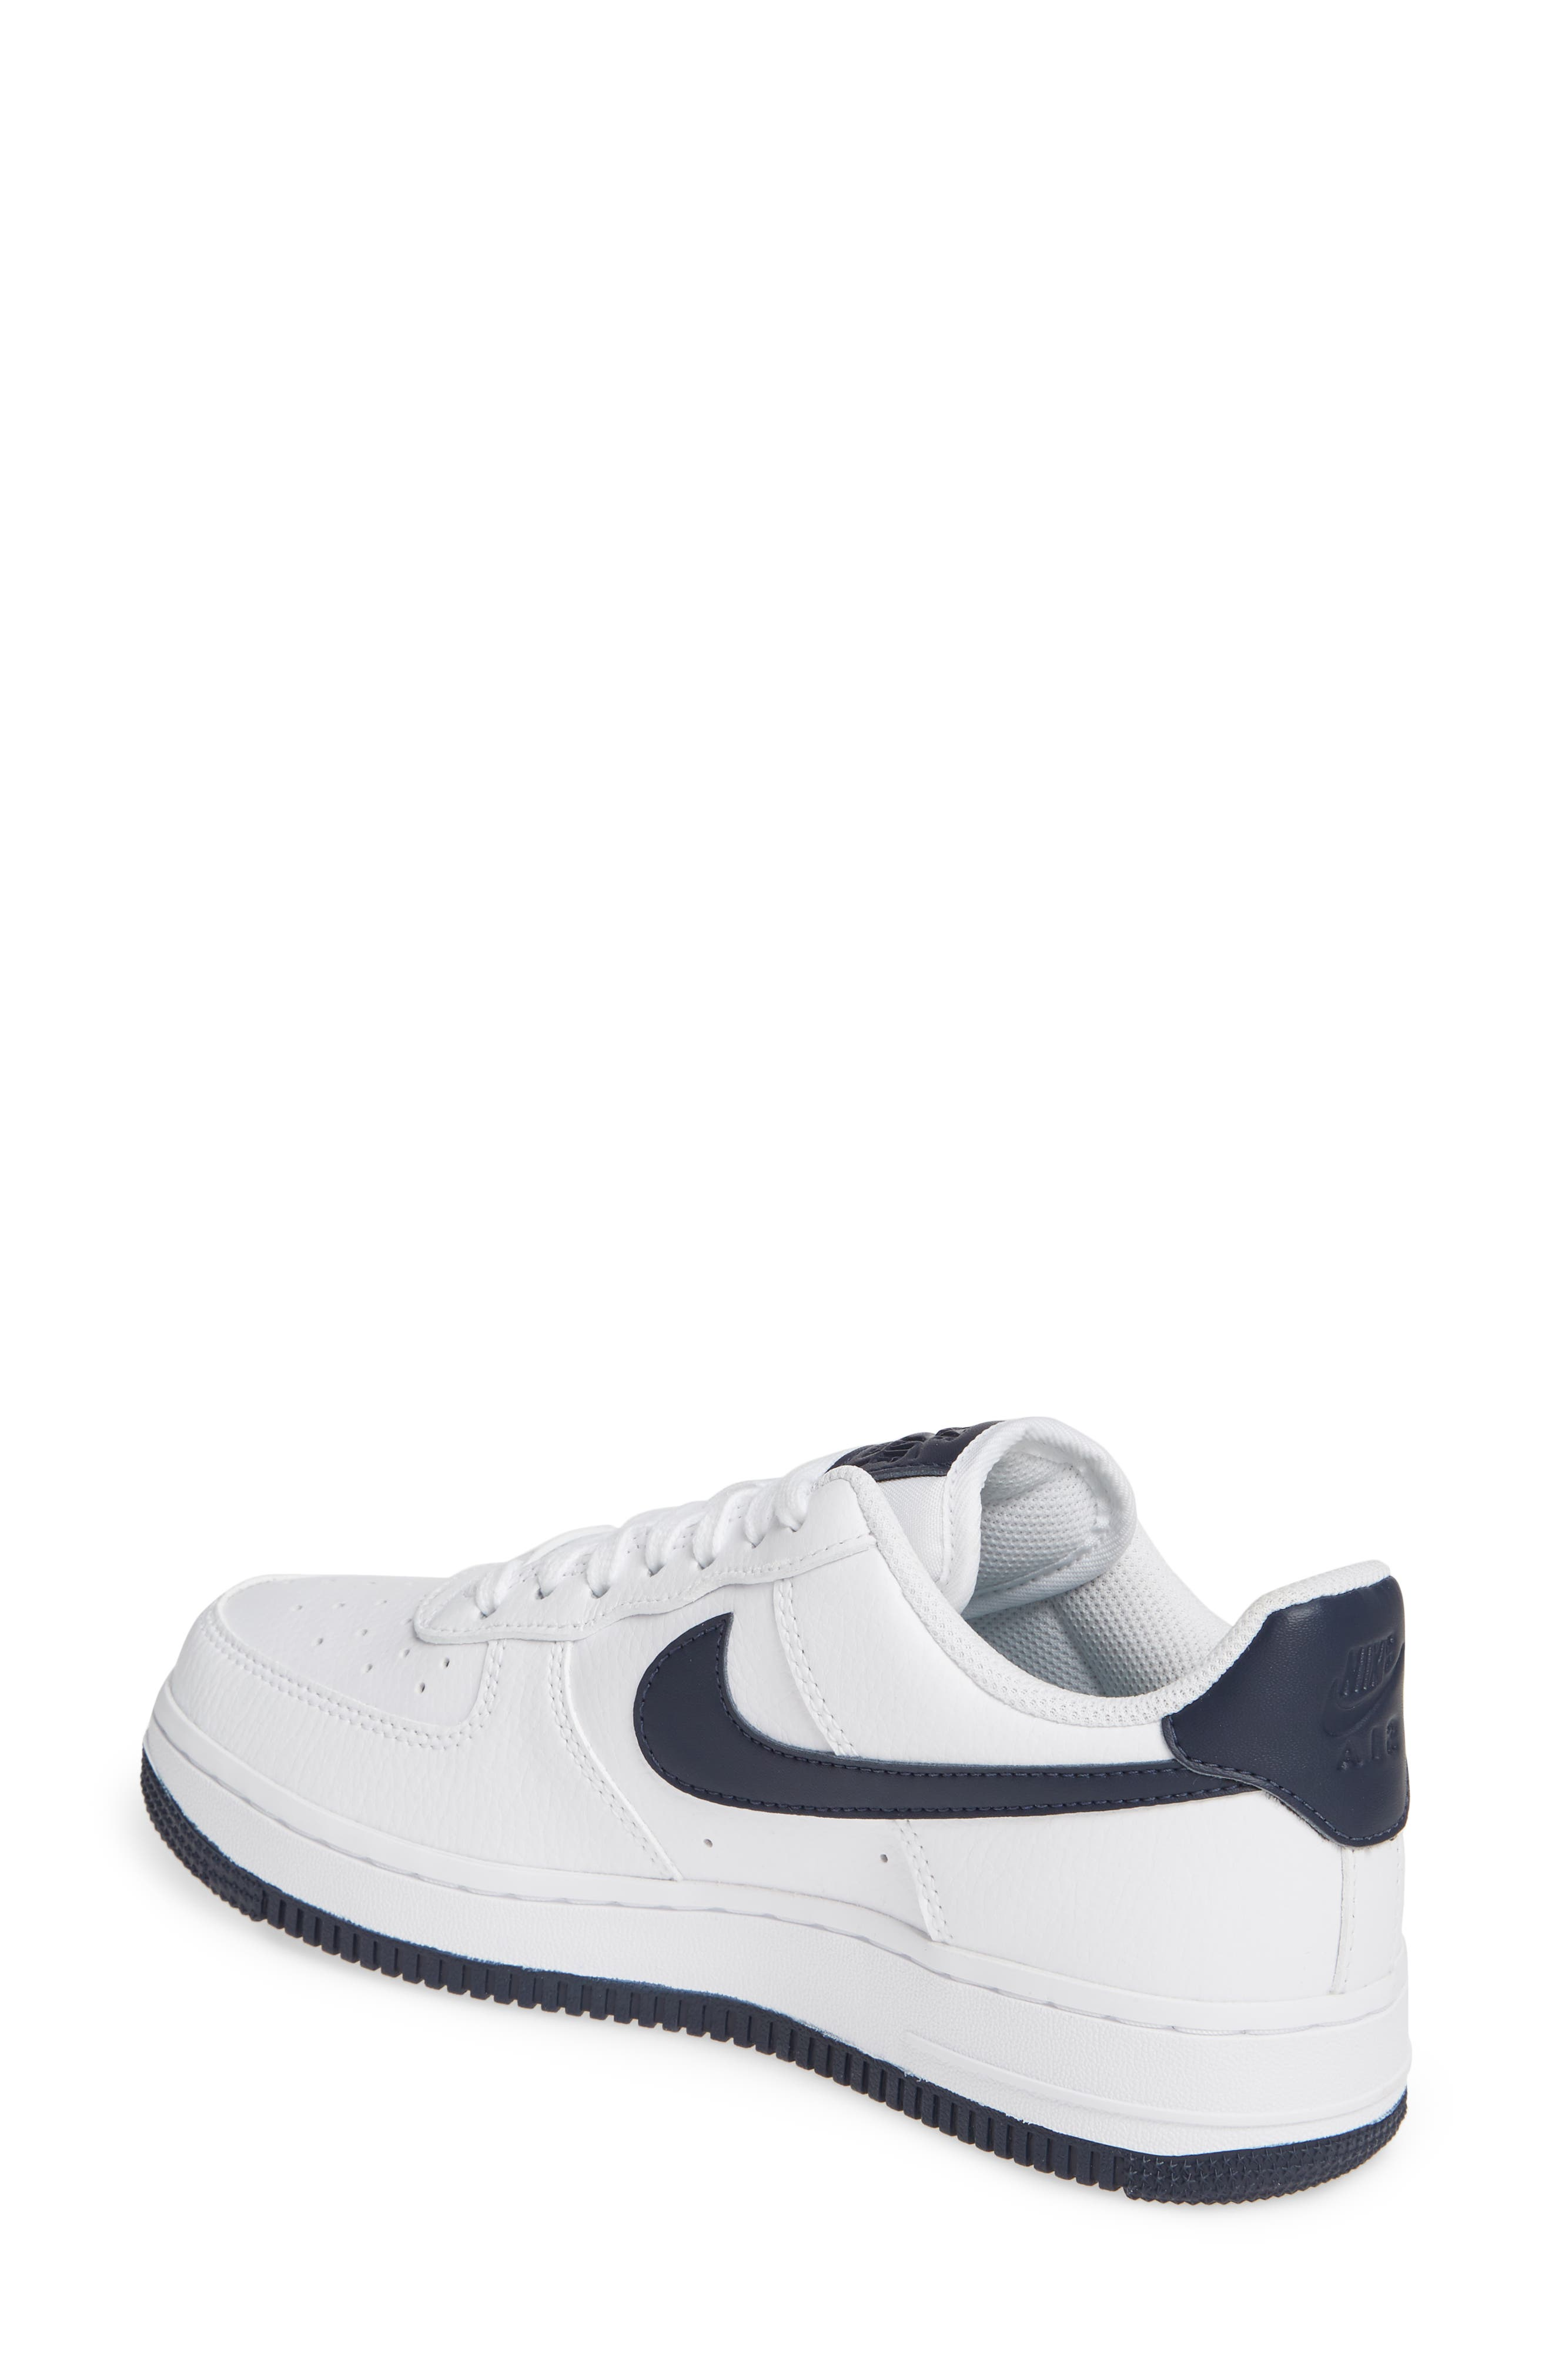 f118dc5cf4cb0 Women's Nike Shoes | Nordstrom